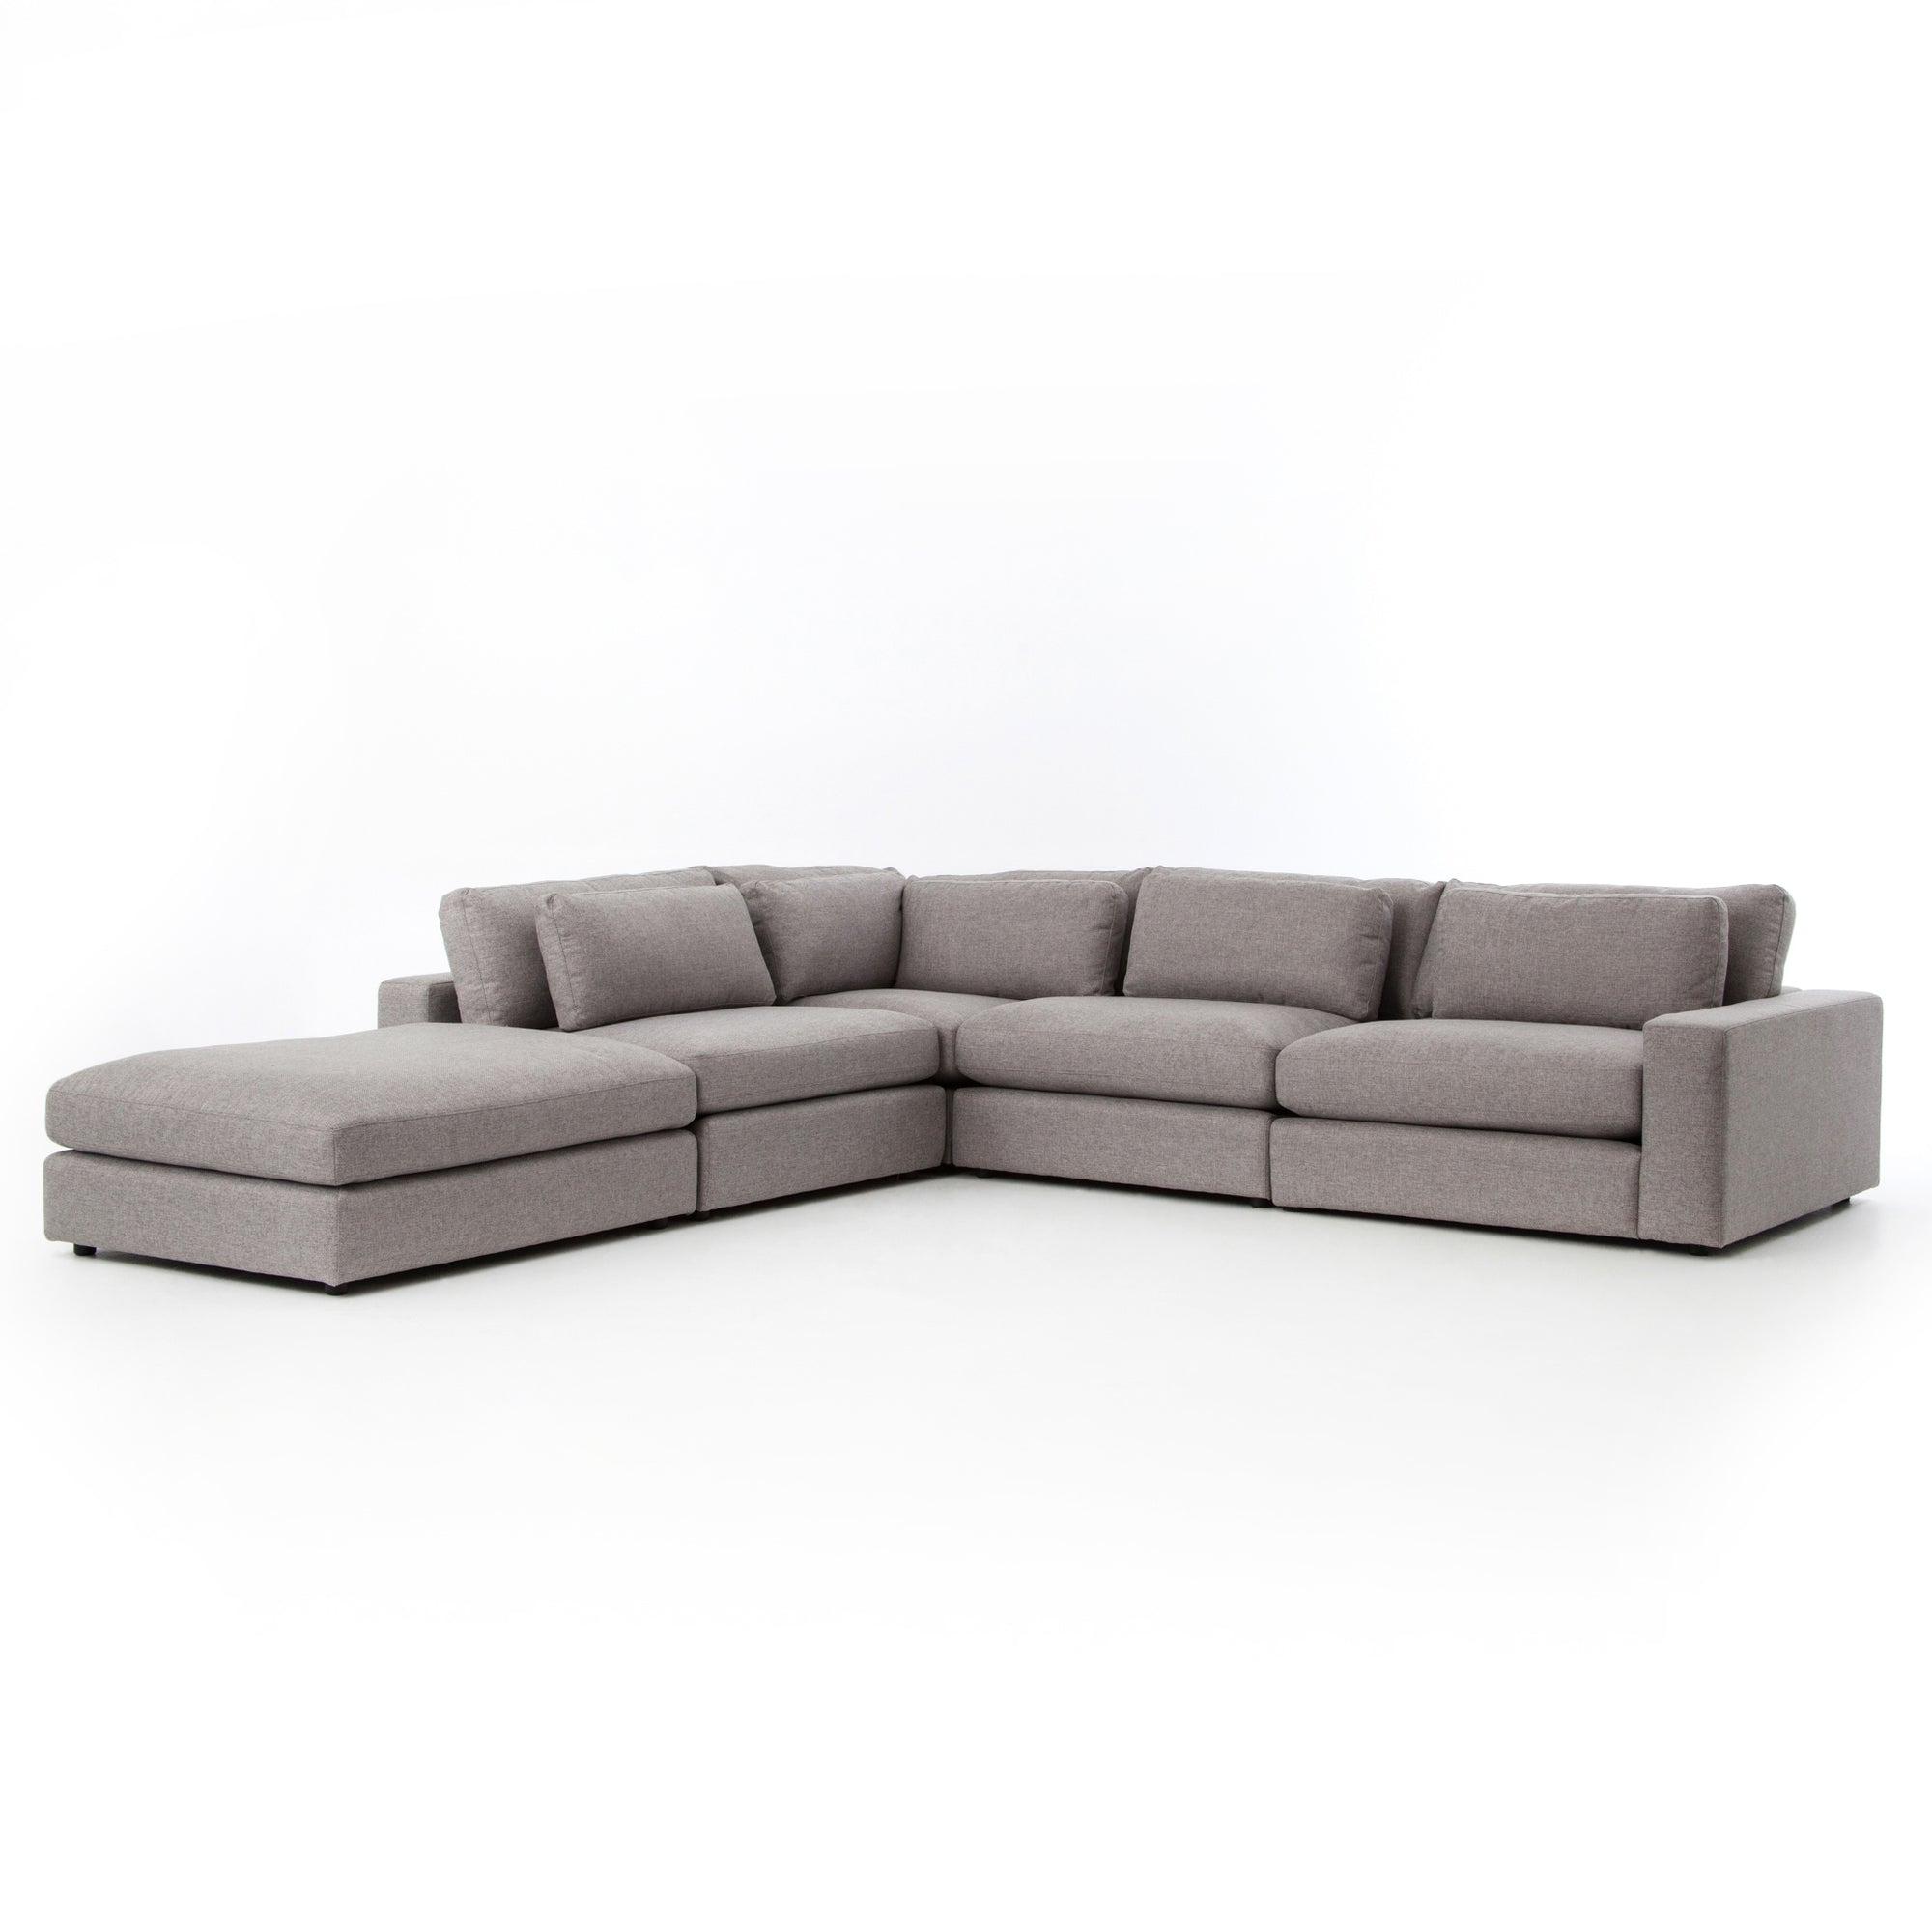 Bloor 4 - Pc Raf Sectional W/ Ottoman - Ches